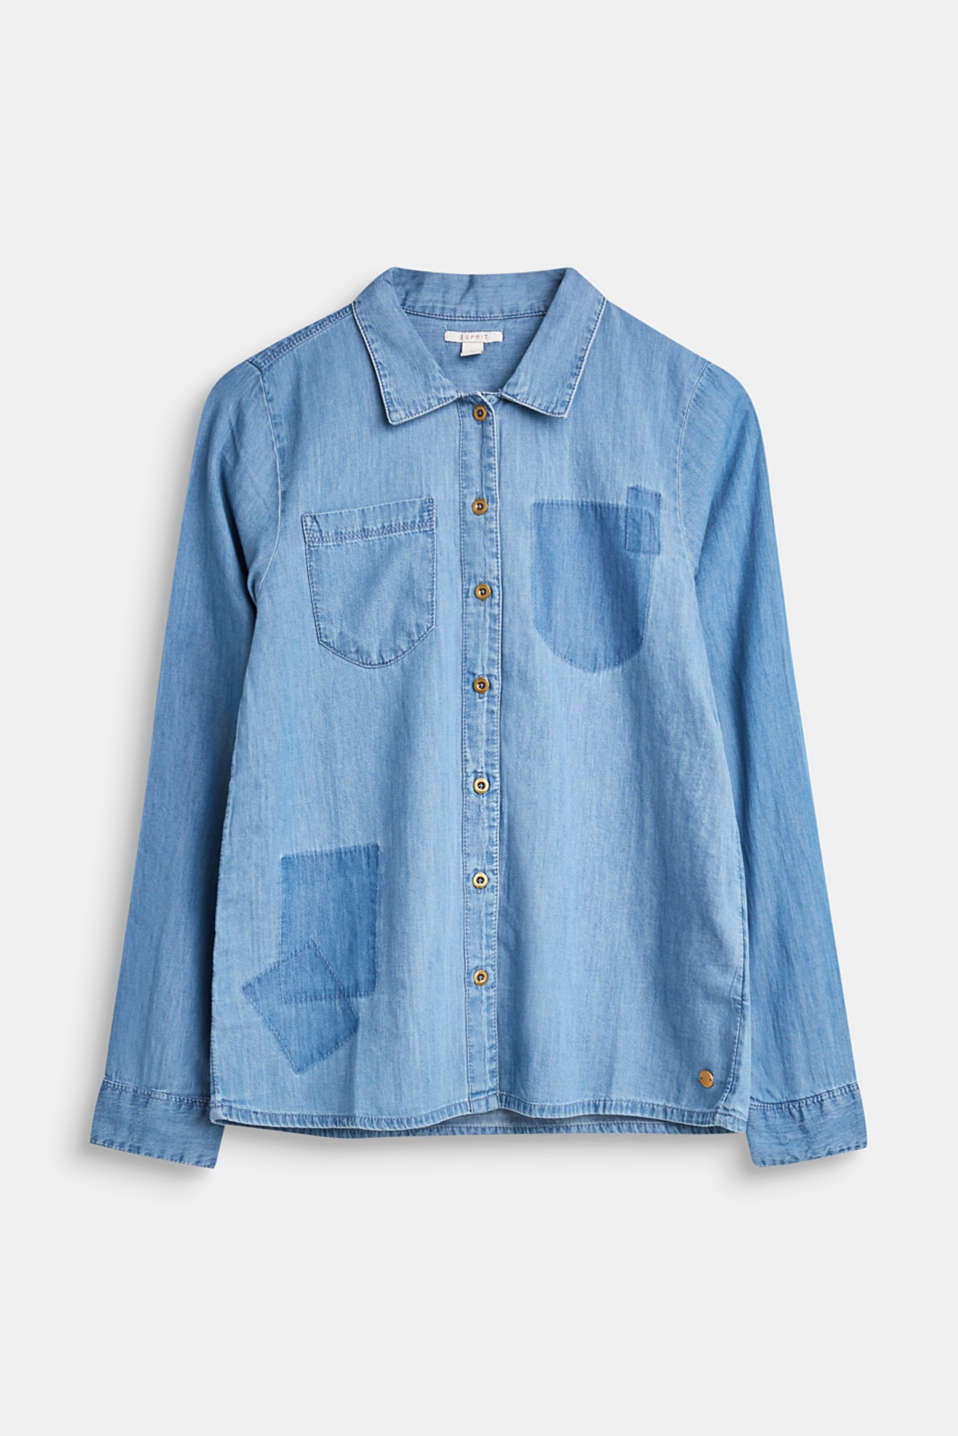 Esprit - Denim shirt with appliqués, 100% cotton